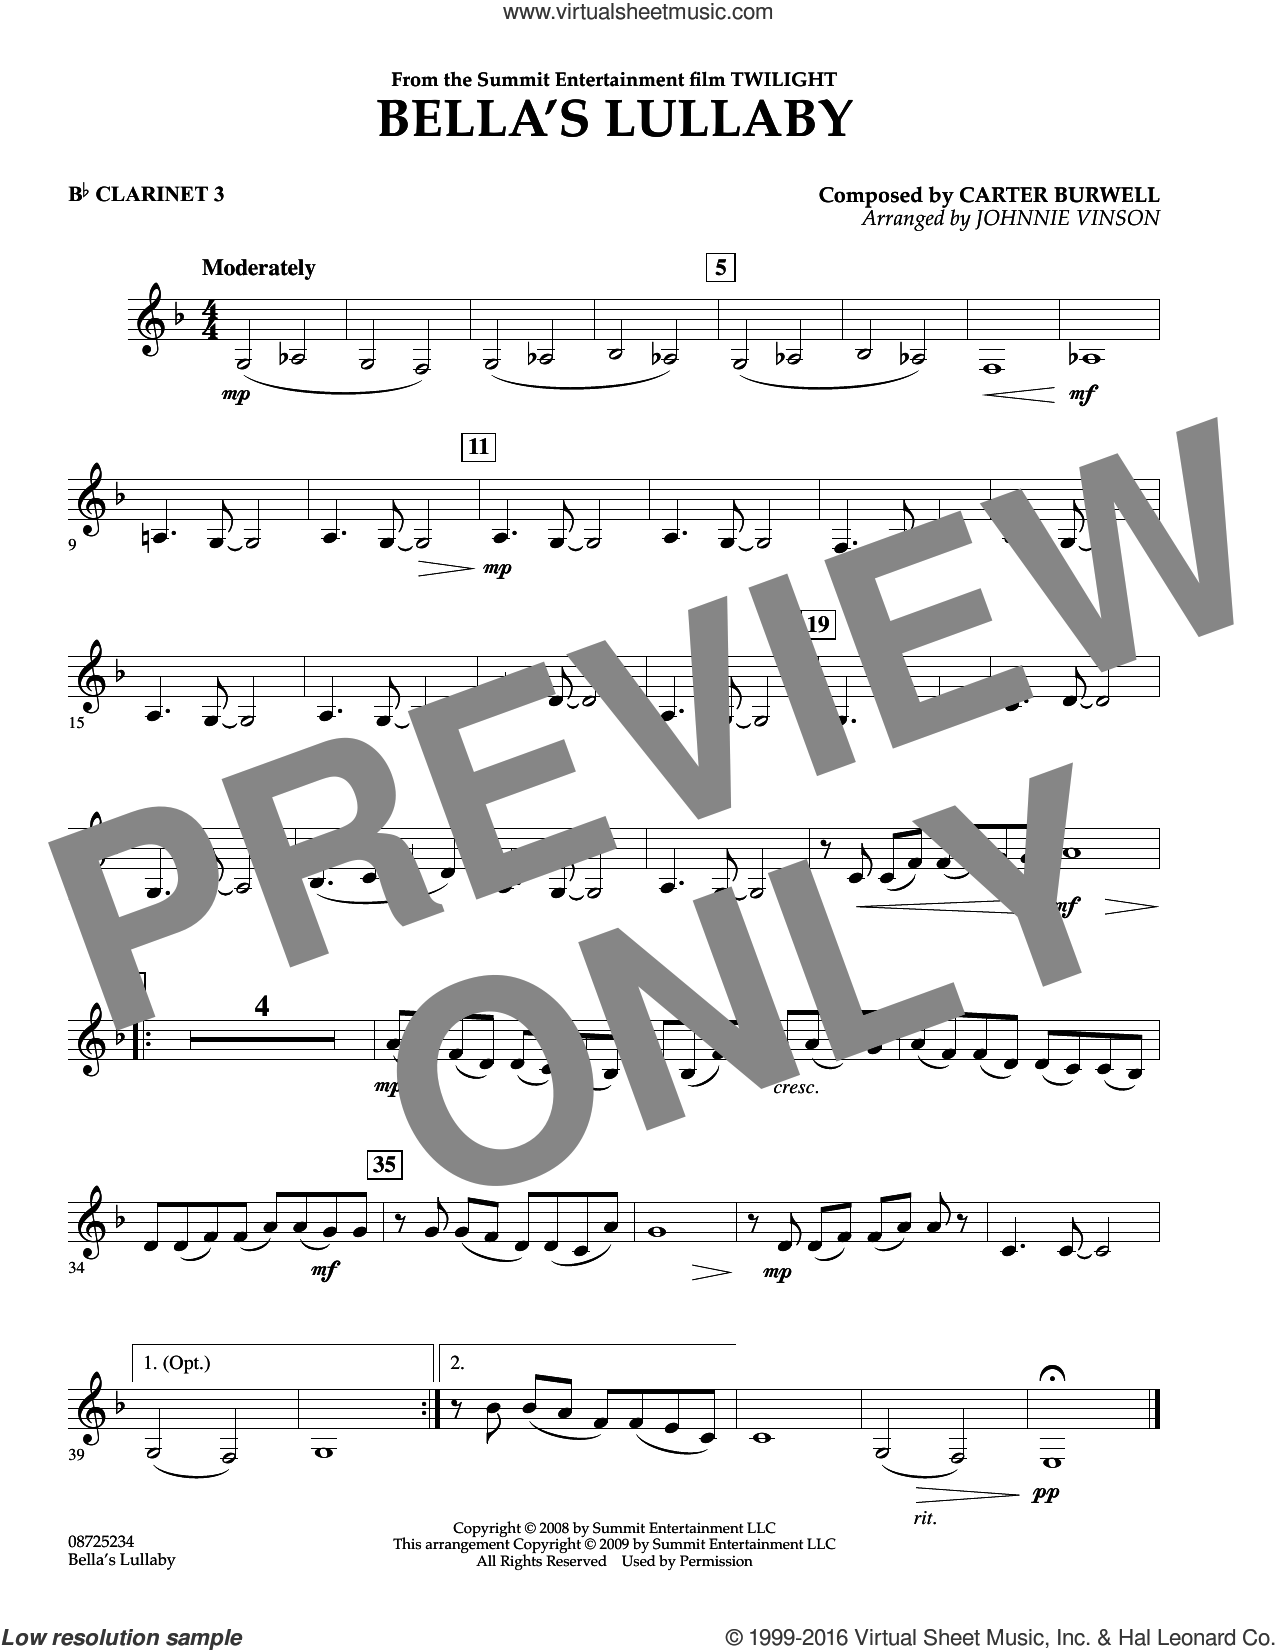 Bella's Lullaby (from Twilight) sheet music for concert band (Bb clarinet 3) by Carter Burwell and Johnnie Vinson, intermediate skill level